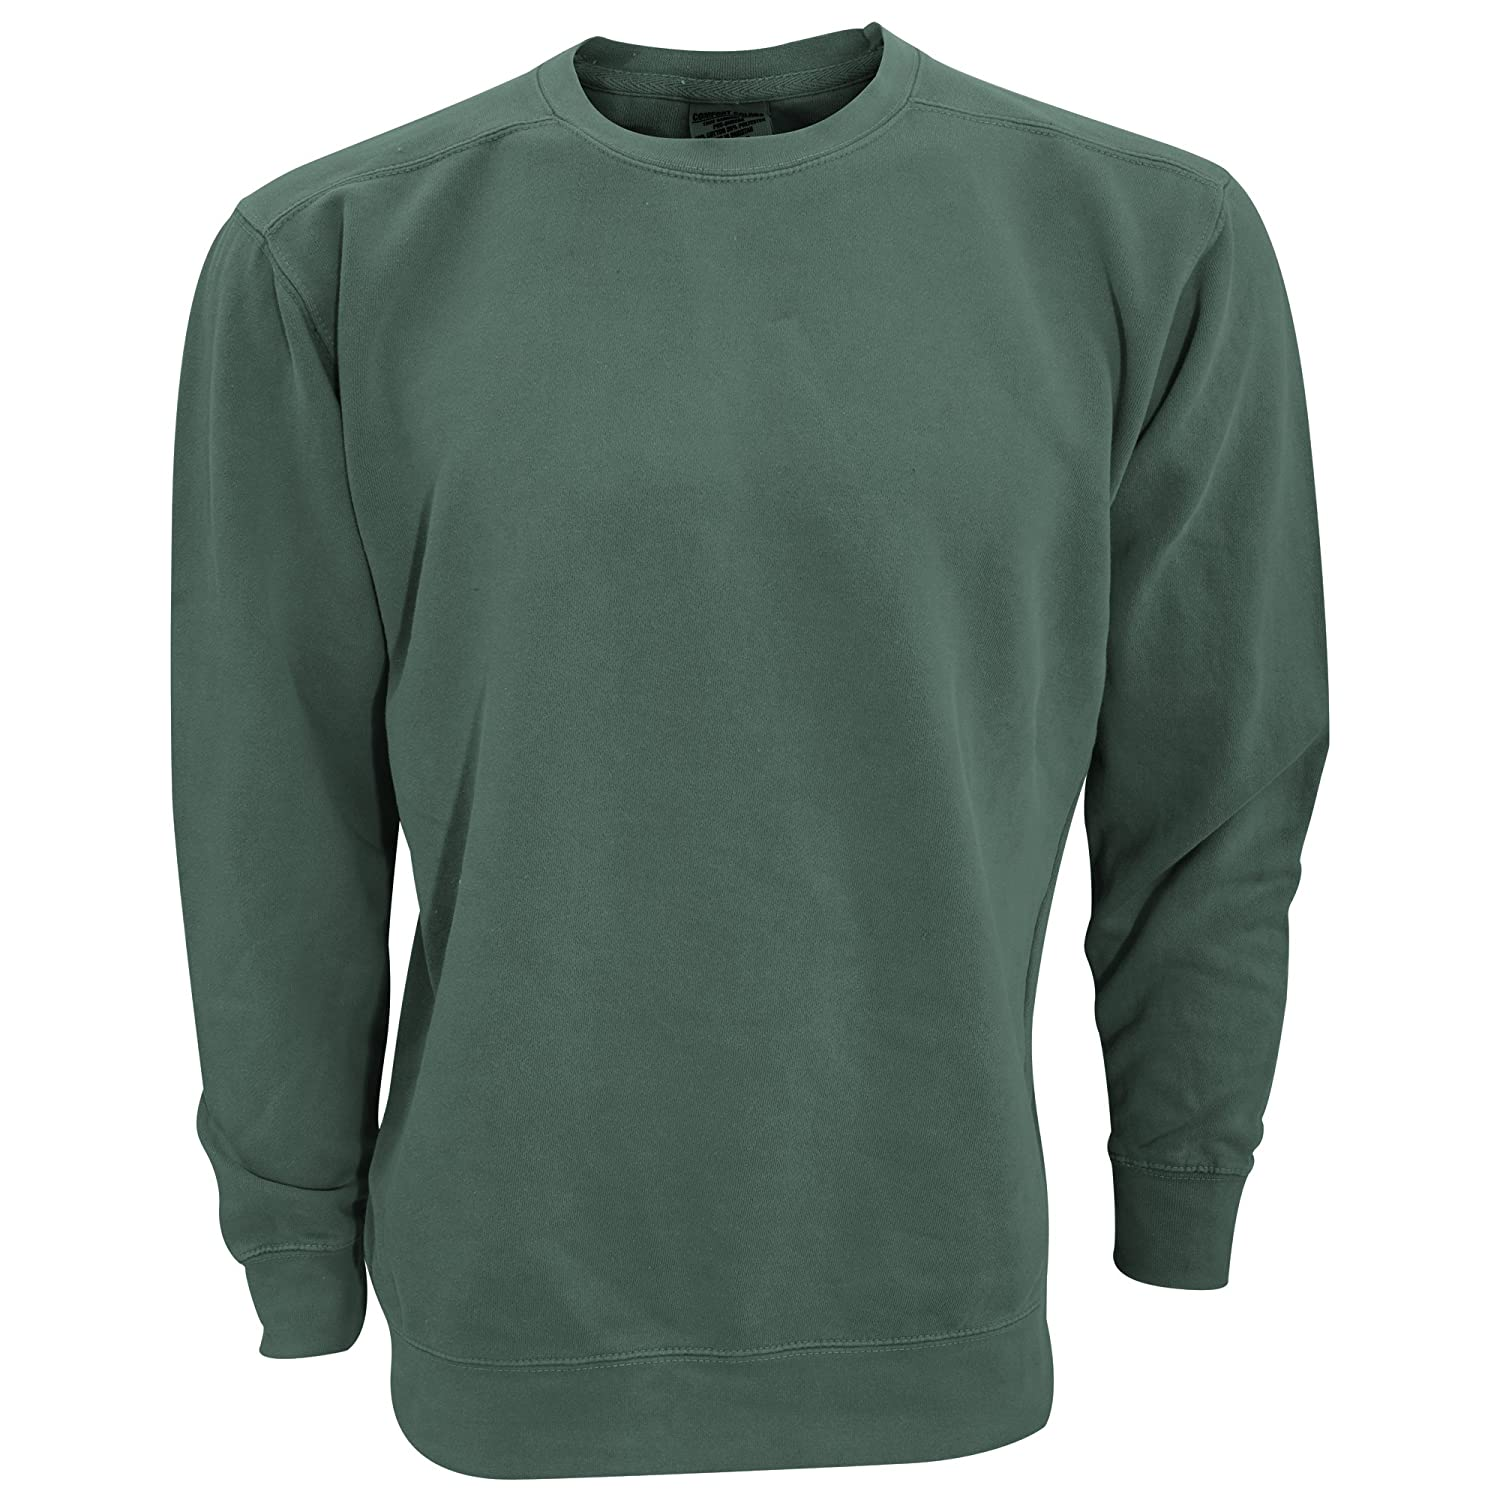 Blue Spruce S Comfort Colors Adults Unisex Crew Neck Sweatshirt